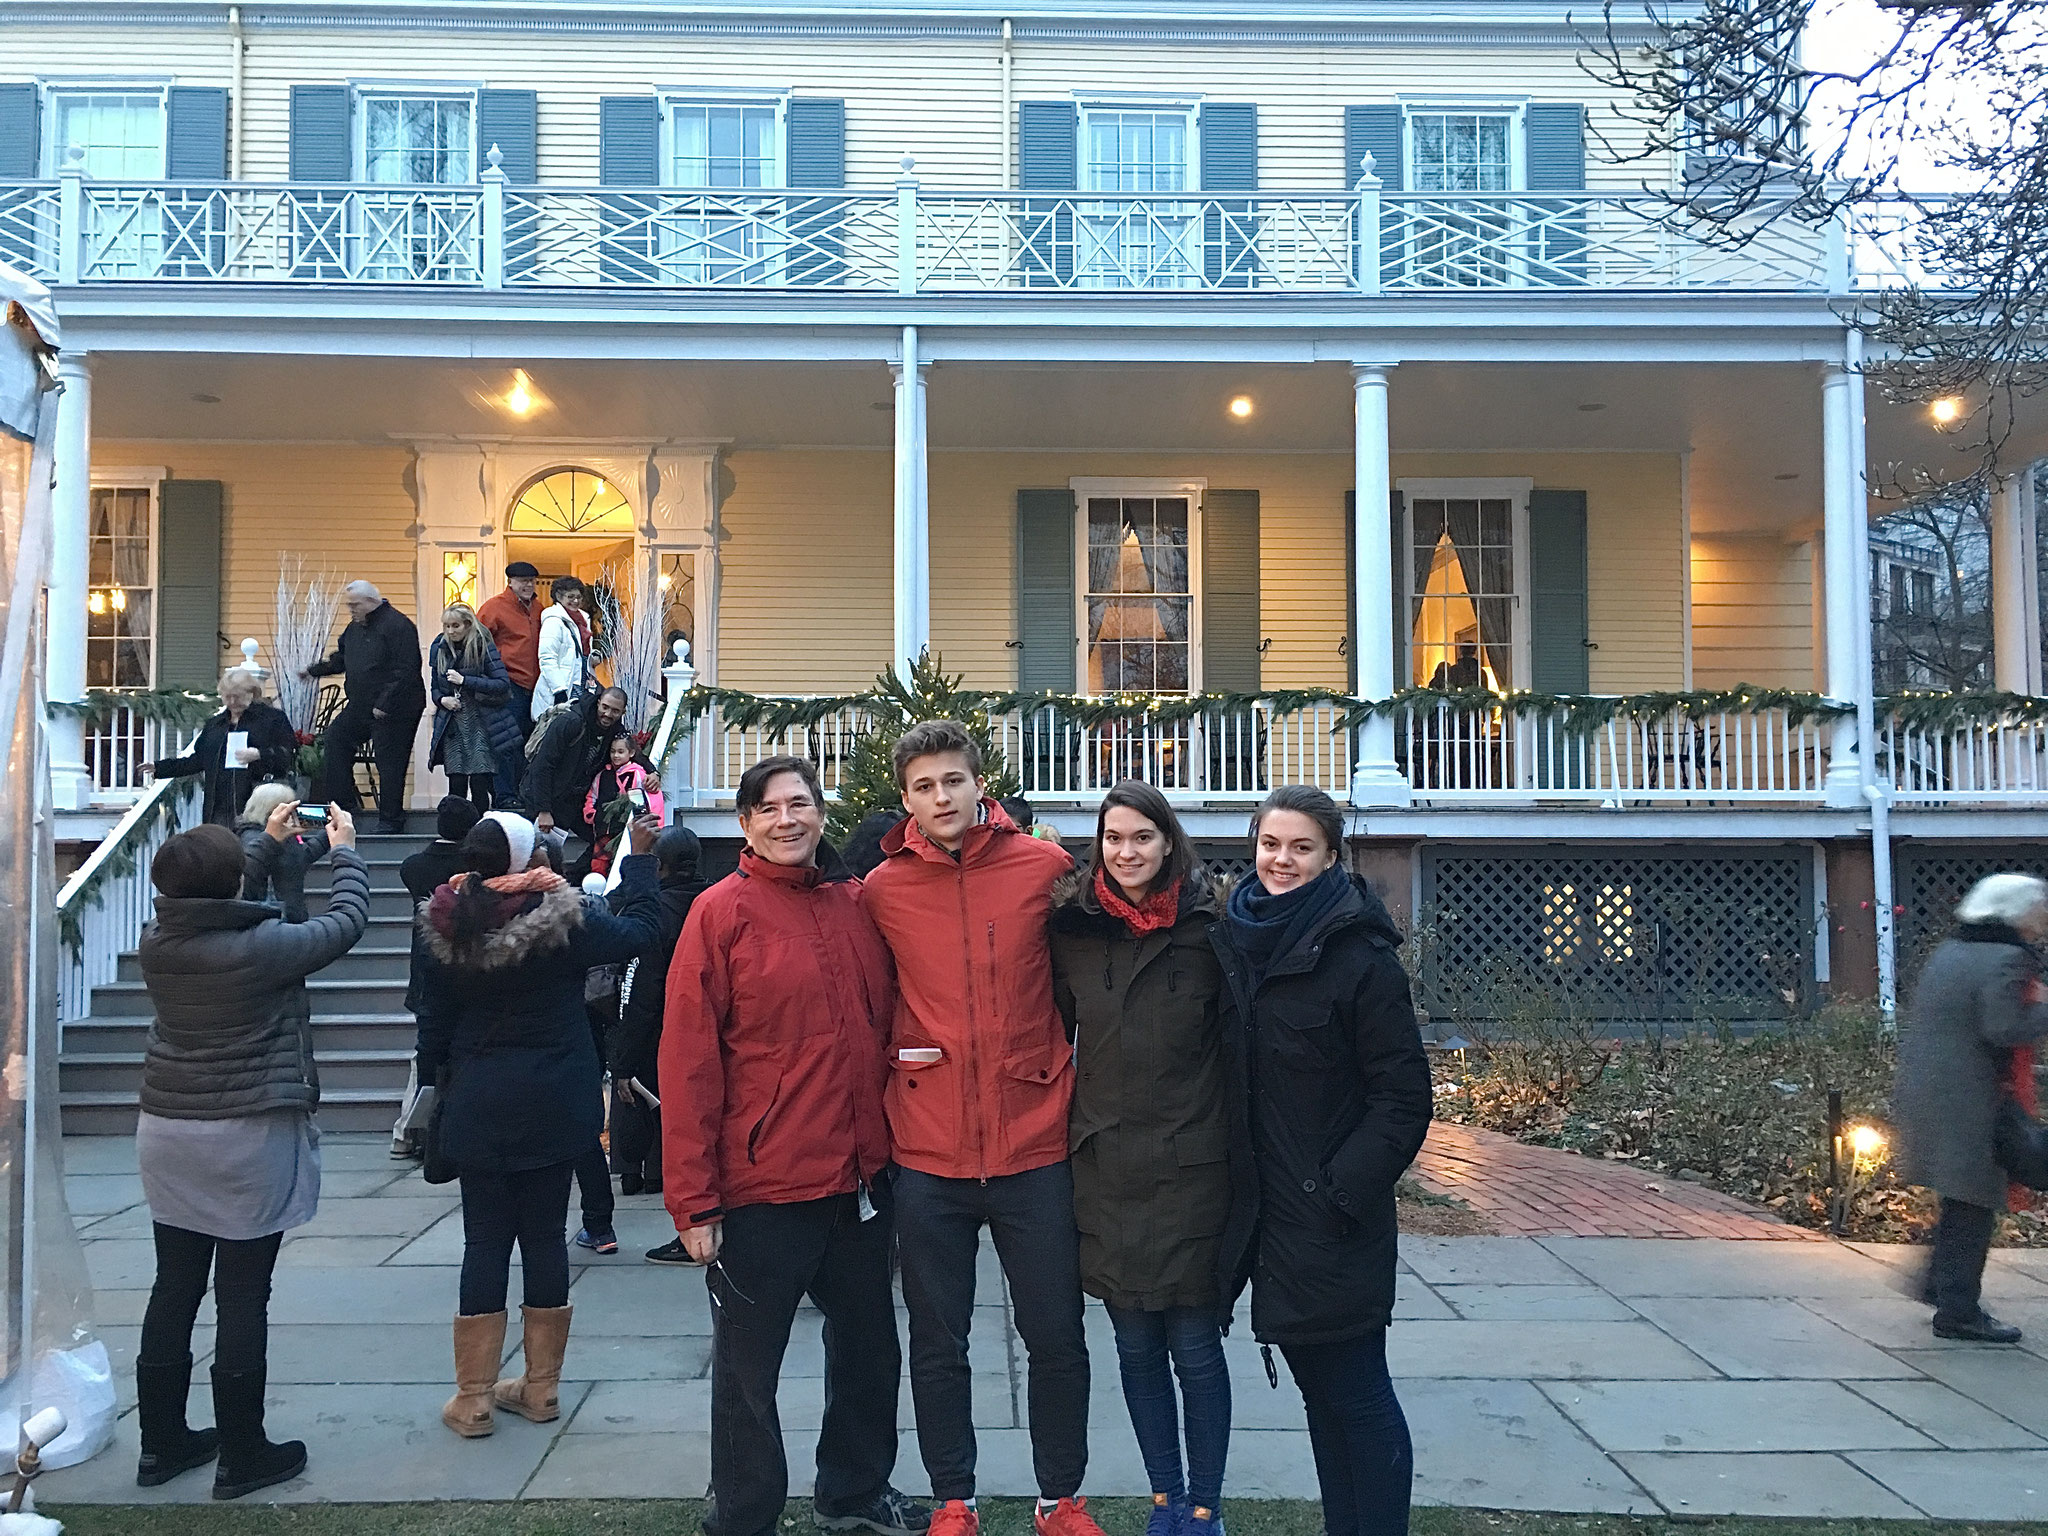 John, Jack, Ellie & Kate outside of Gracie Mansion, Dec. 21, 2016